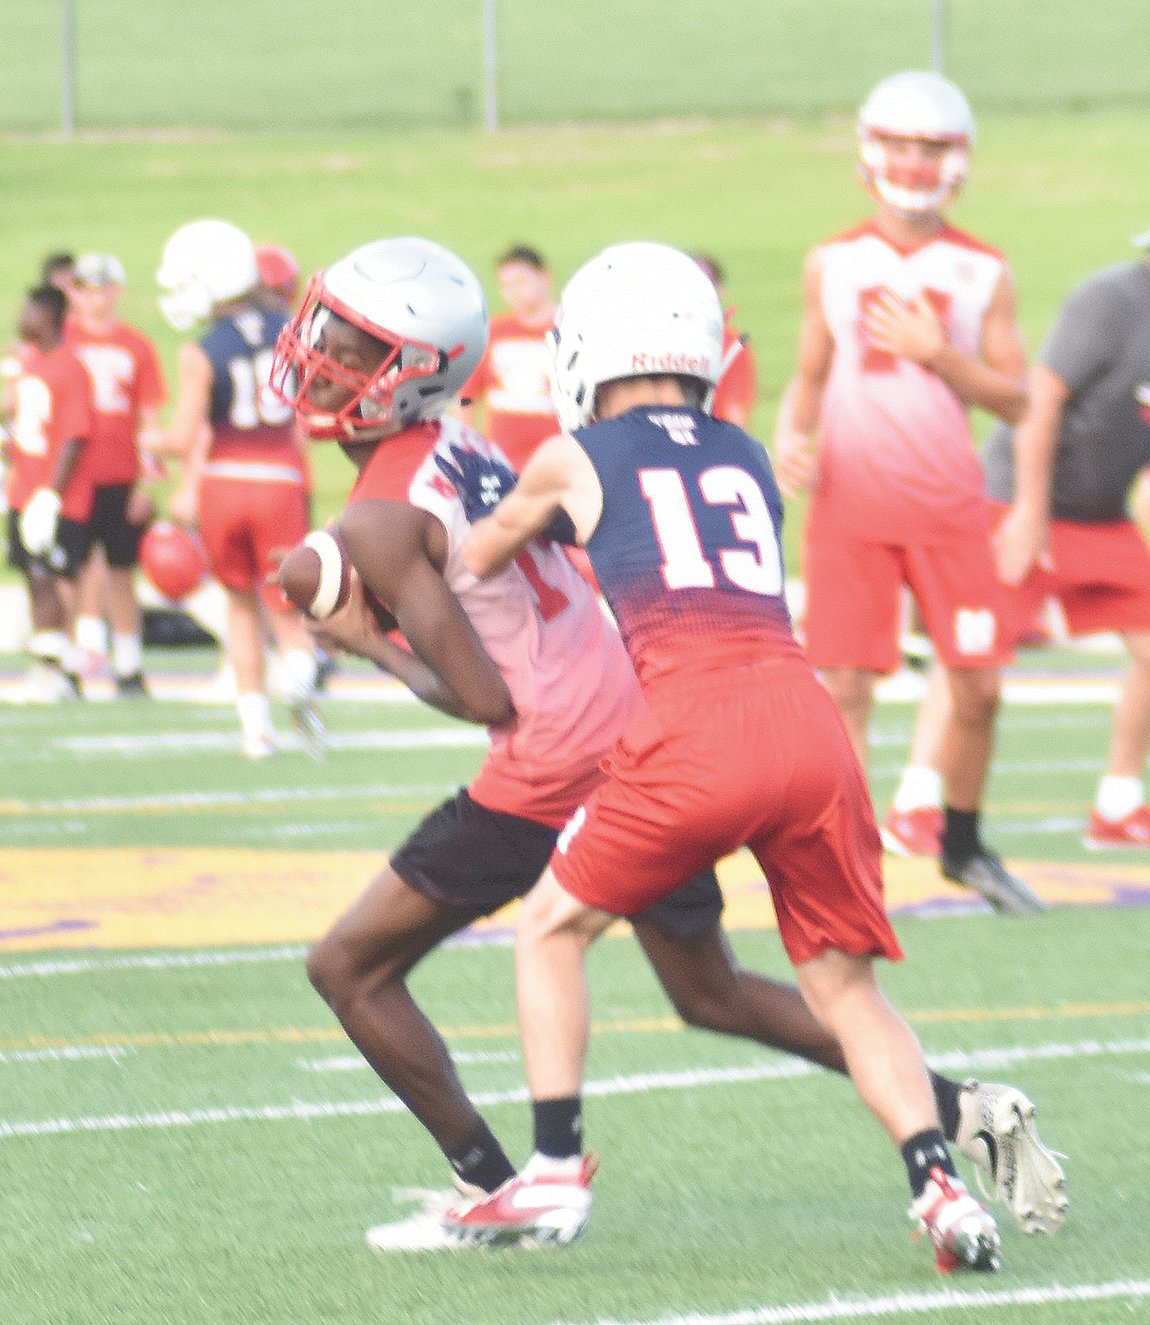 Jordan Gilbert grabs a pass against a Henry County defender during last Thursday's competition.